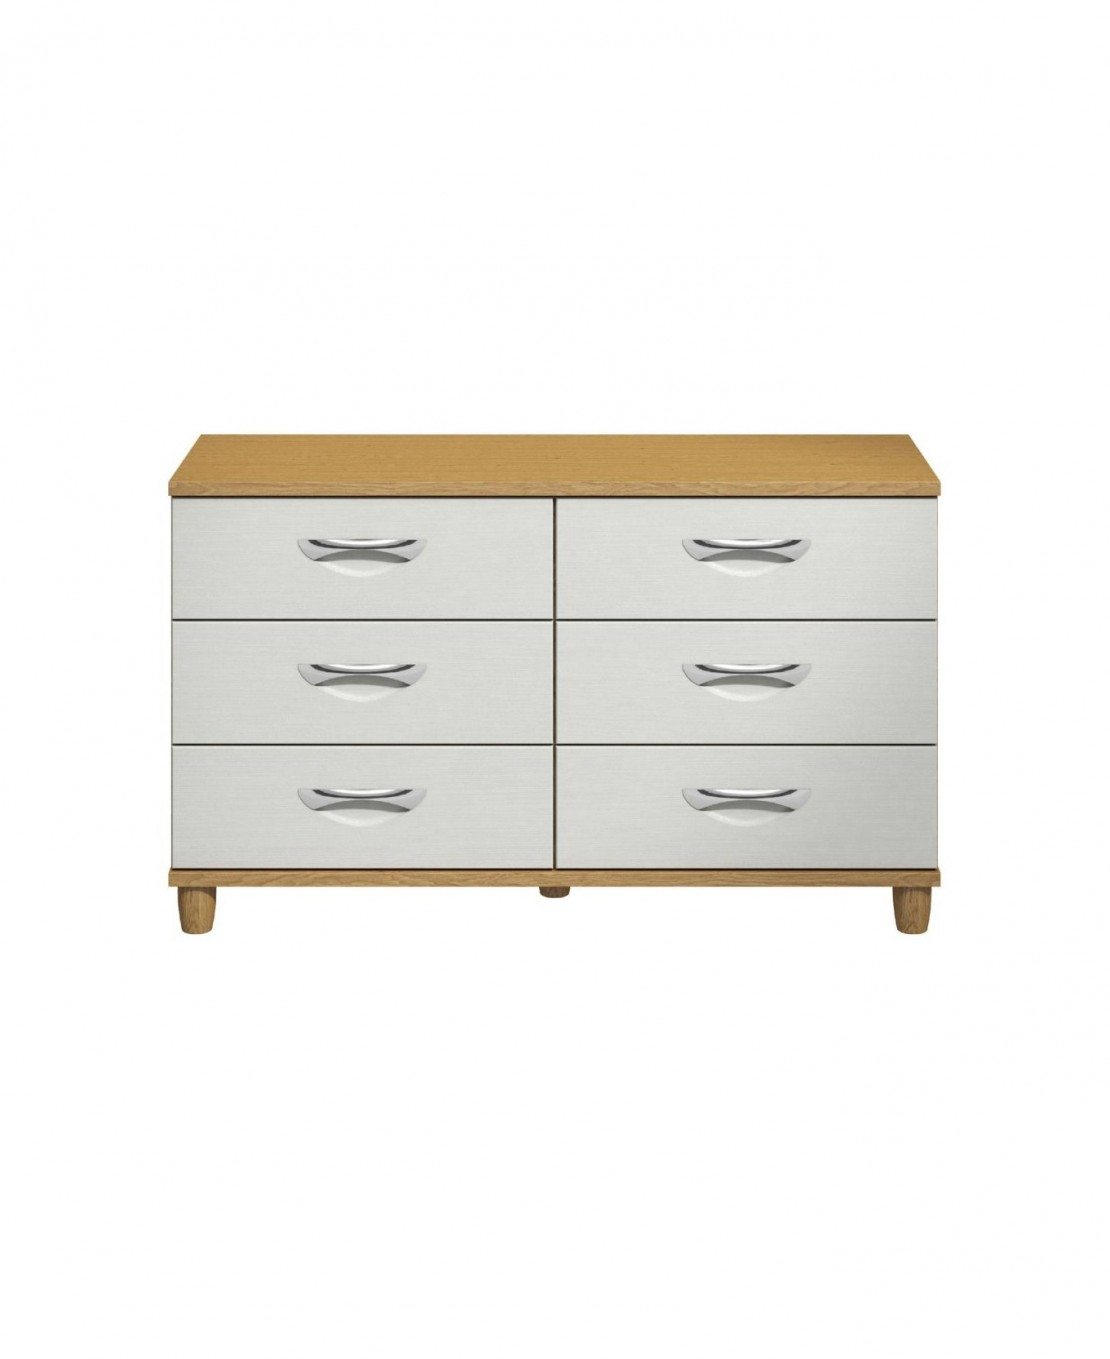 /_images/product-photos/kt-furniture-moda-white-6-drawer-chest-a.jpg